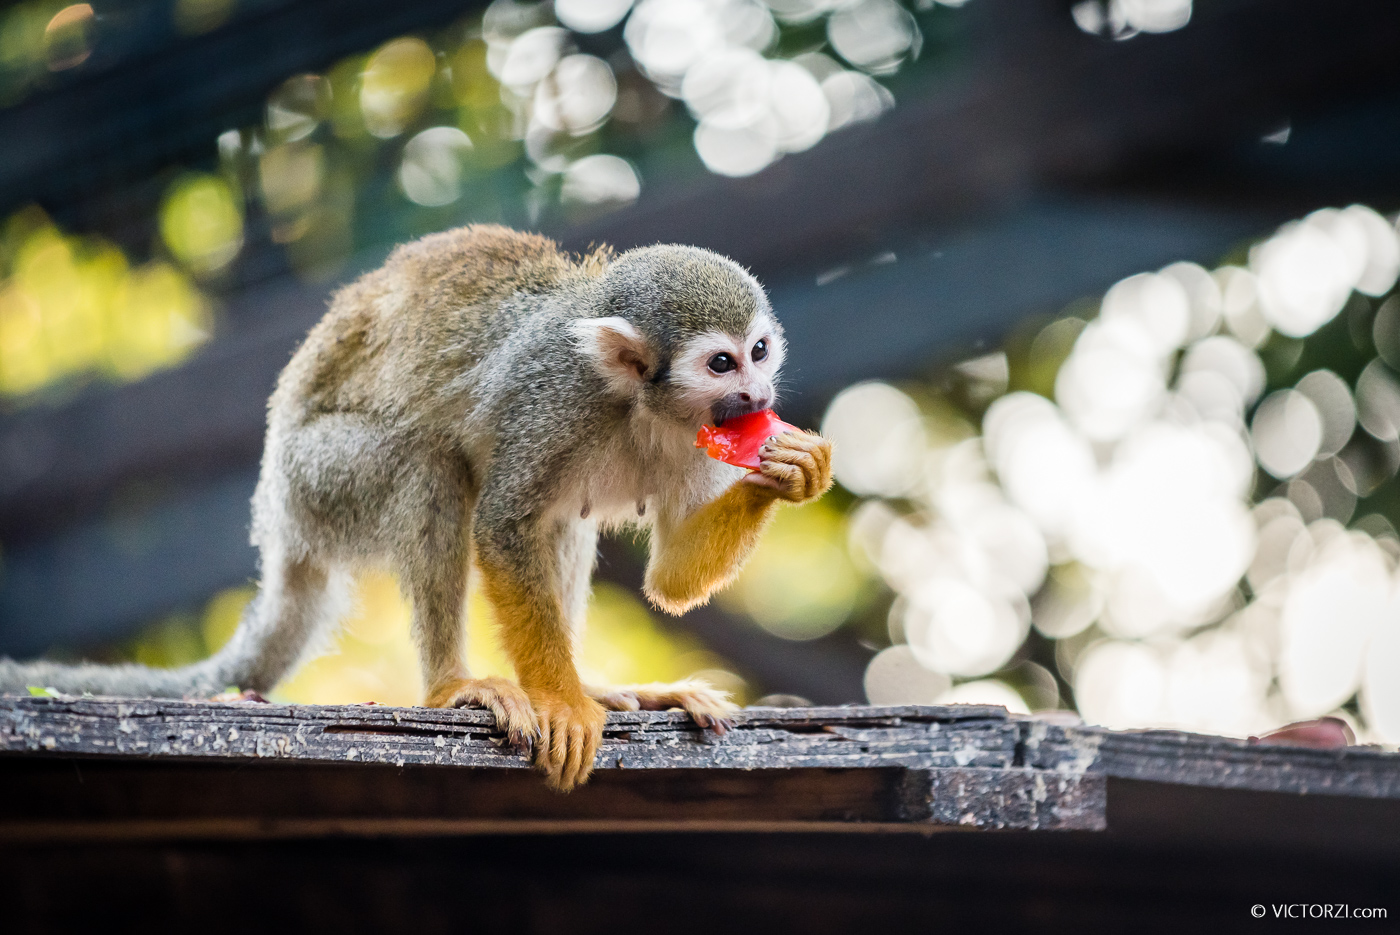 20190921 - Monkeys in Ben Shemen - 1758.